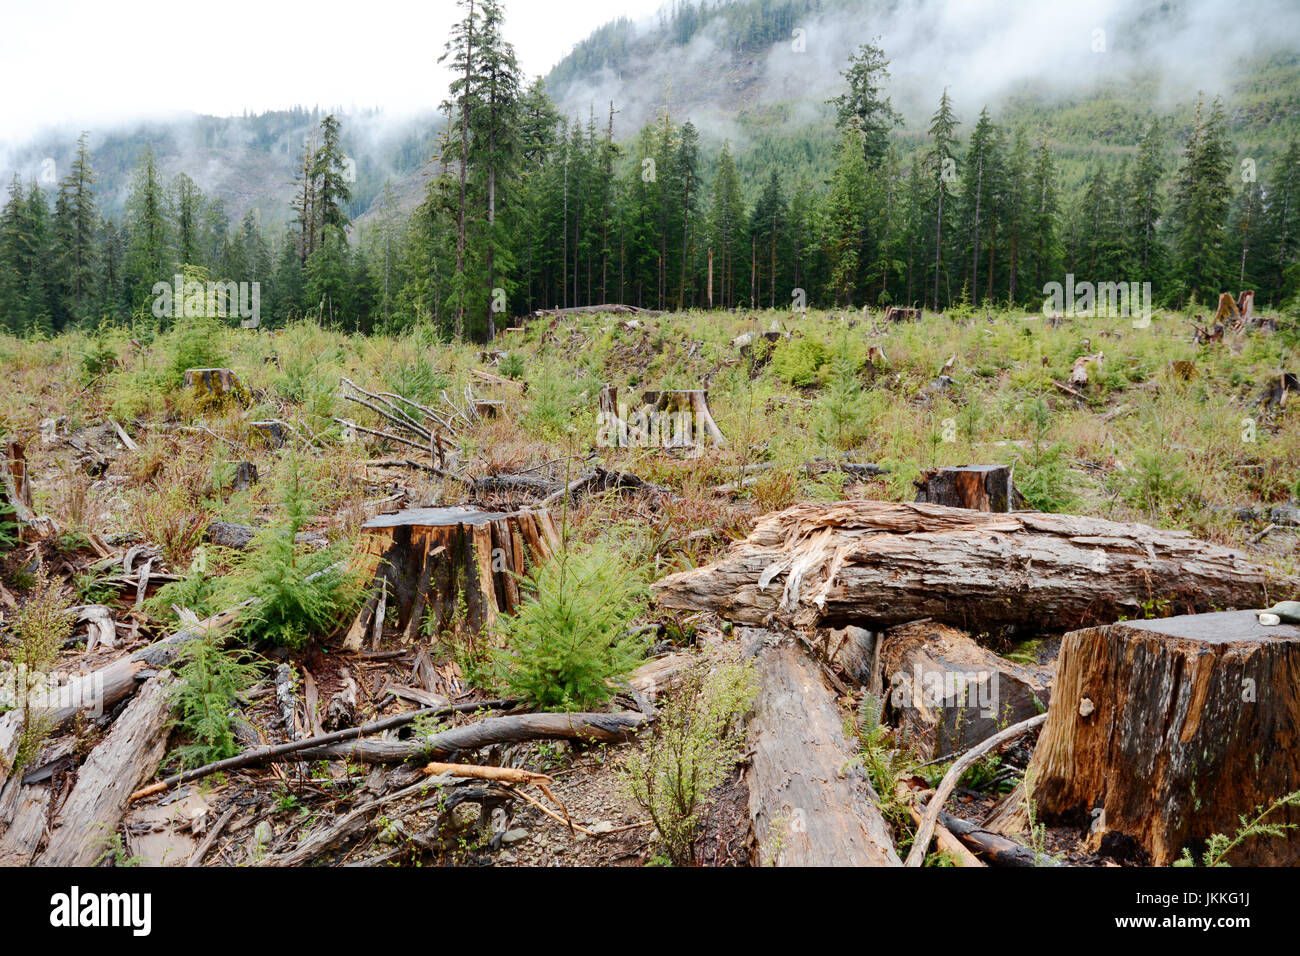 Giant tree stumps in an old growth rainforest clearcut near Port Renfrew, on Vancouver Island, British Columbia, - Stock Image